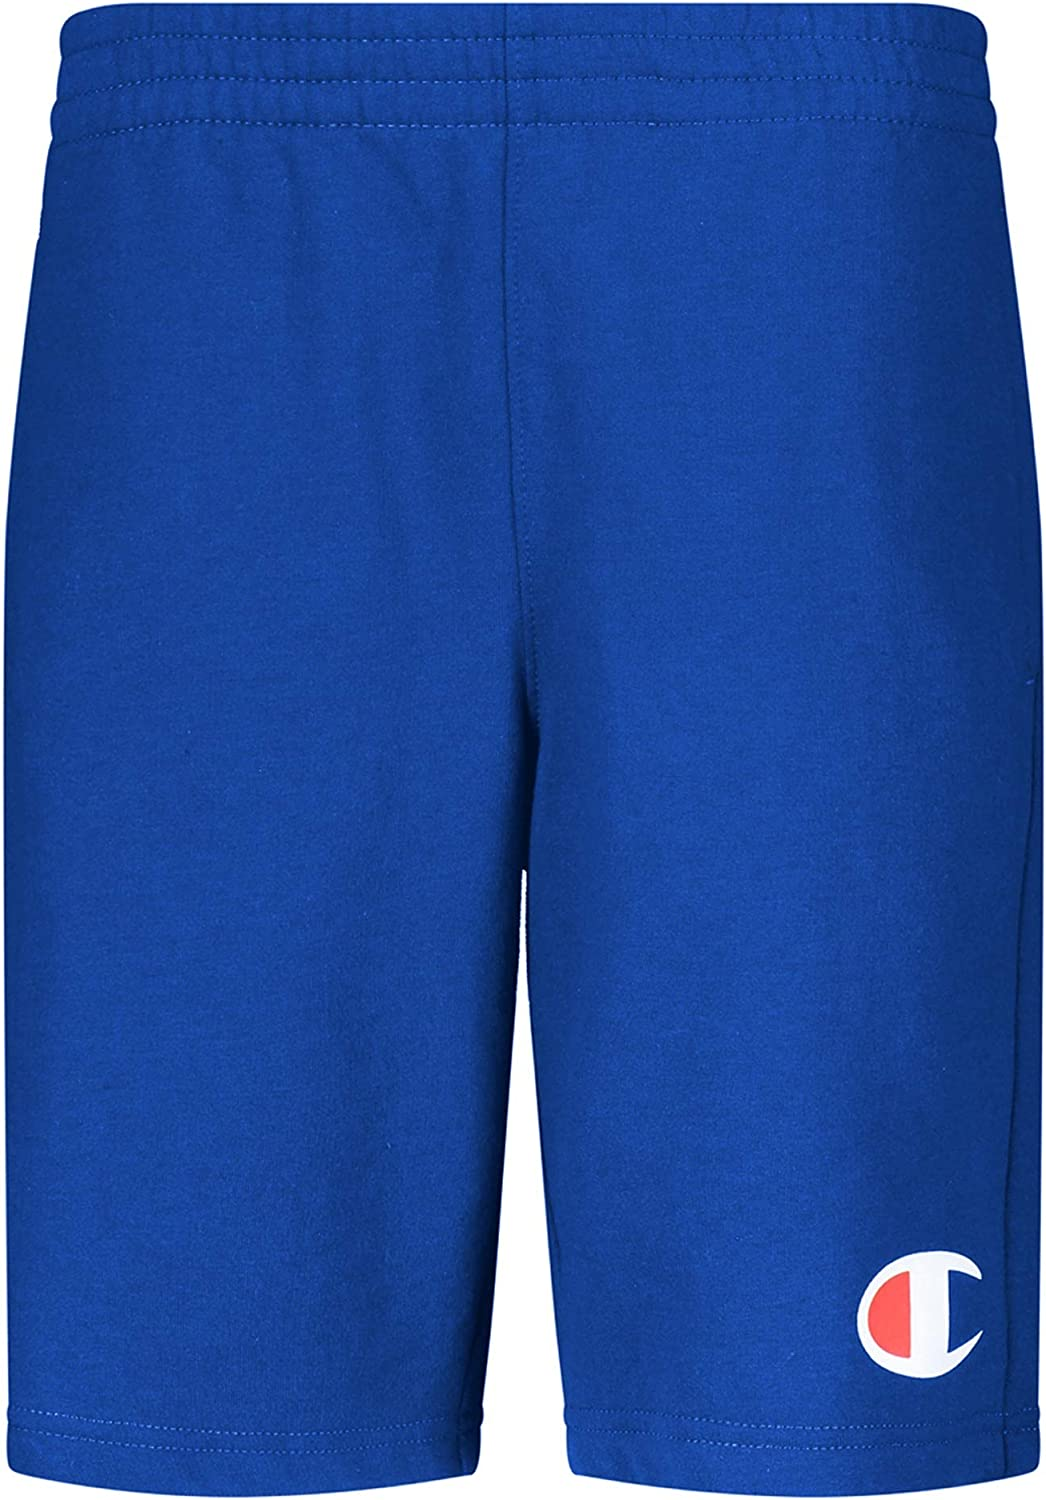 Champion Boys French Terry Short Kids Clothes